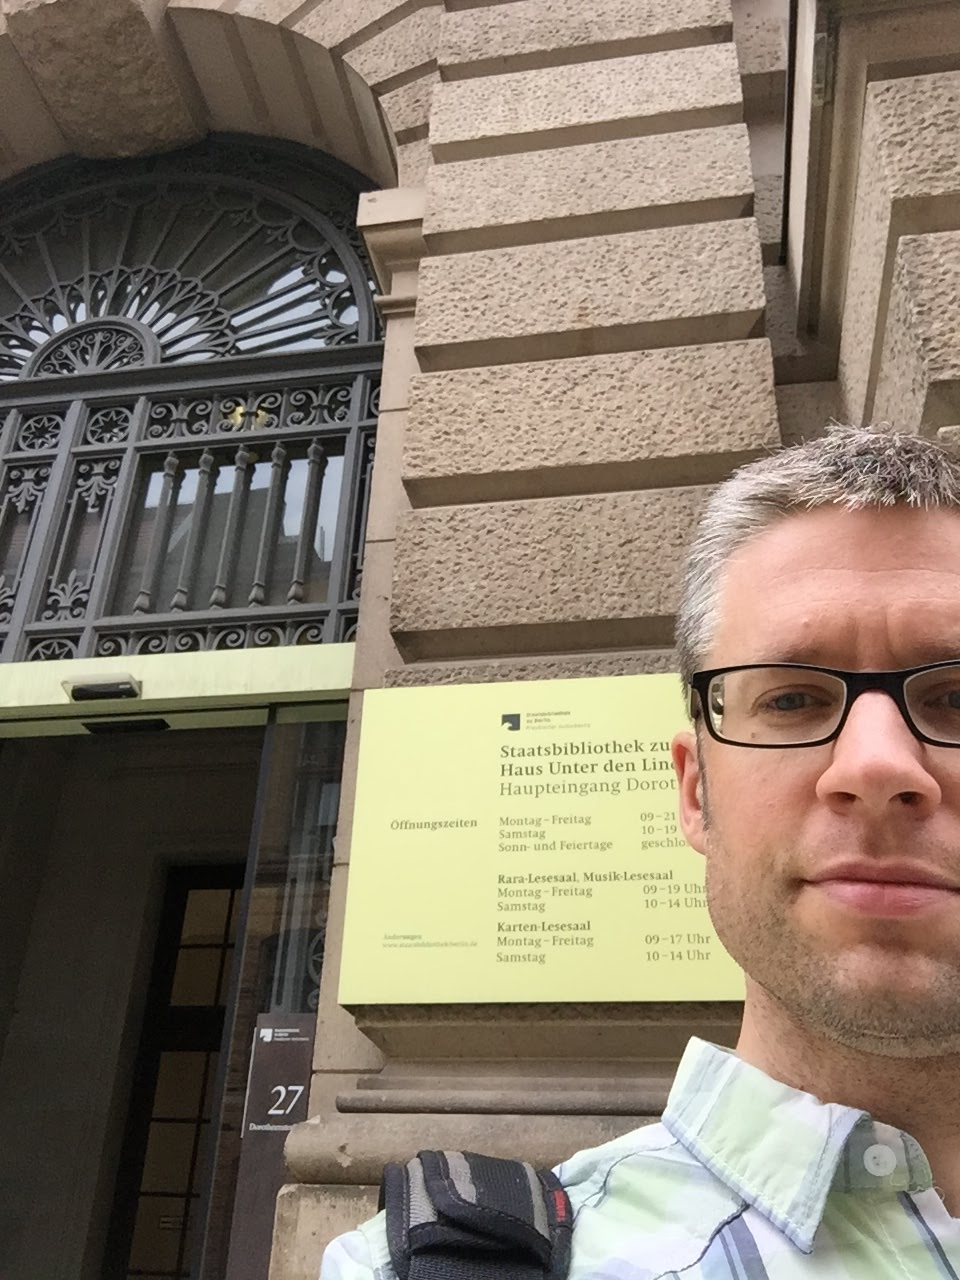 William van Geest conducts dissertation research in Germany